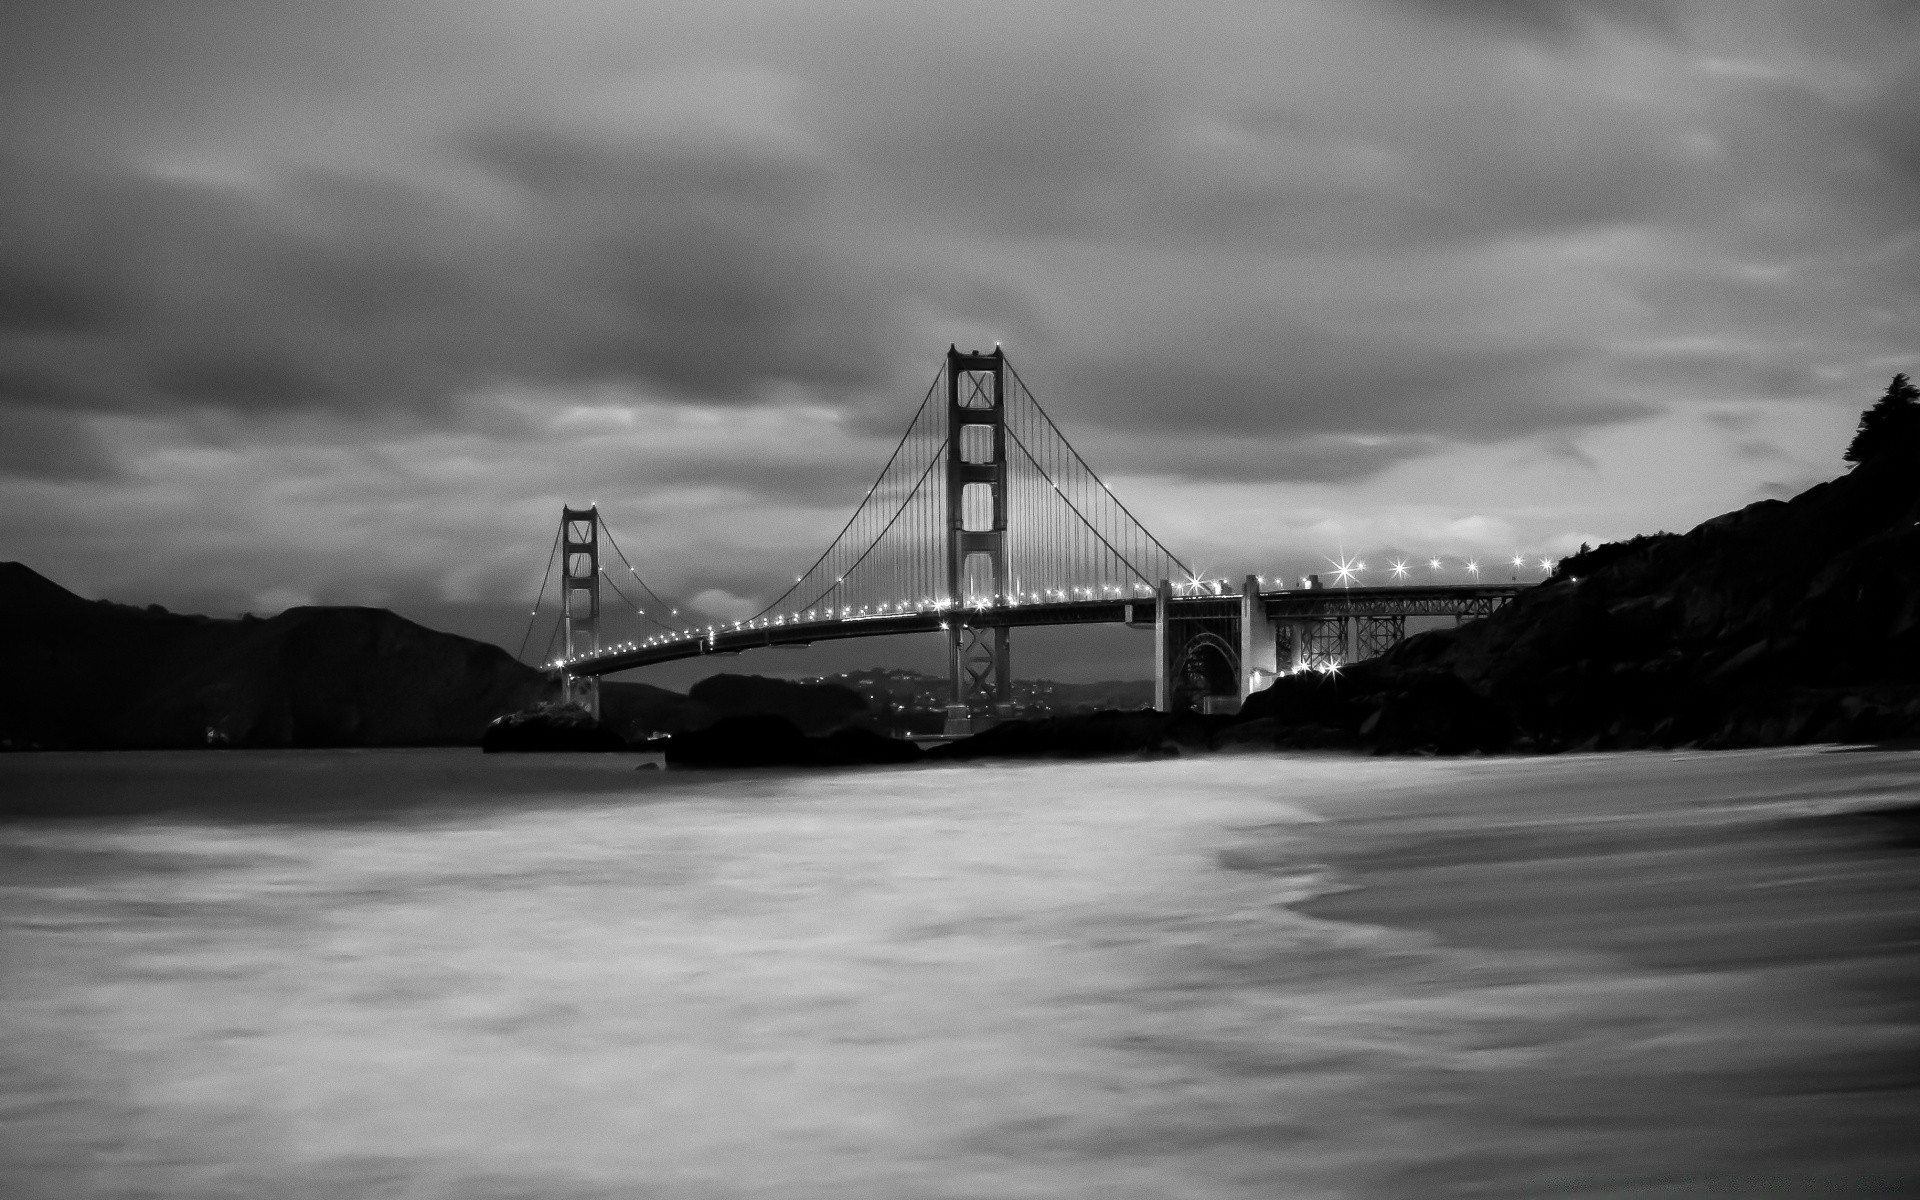 black and white water bridge transportation system vehicle monochrome sea suspension bridge ocean sunset river boat dawn watercraft beach landscape sky travel ship